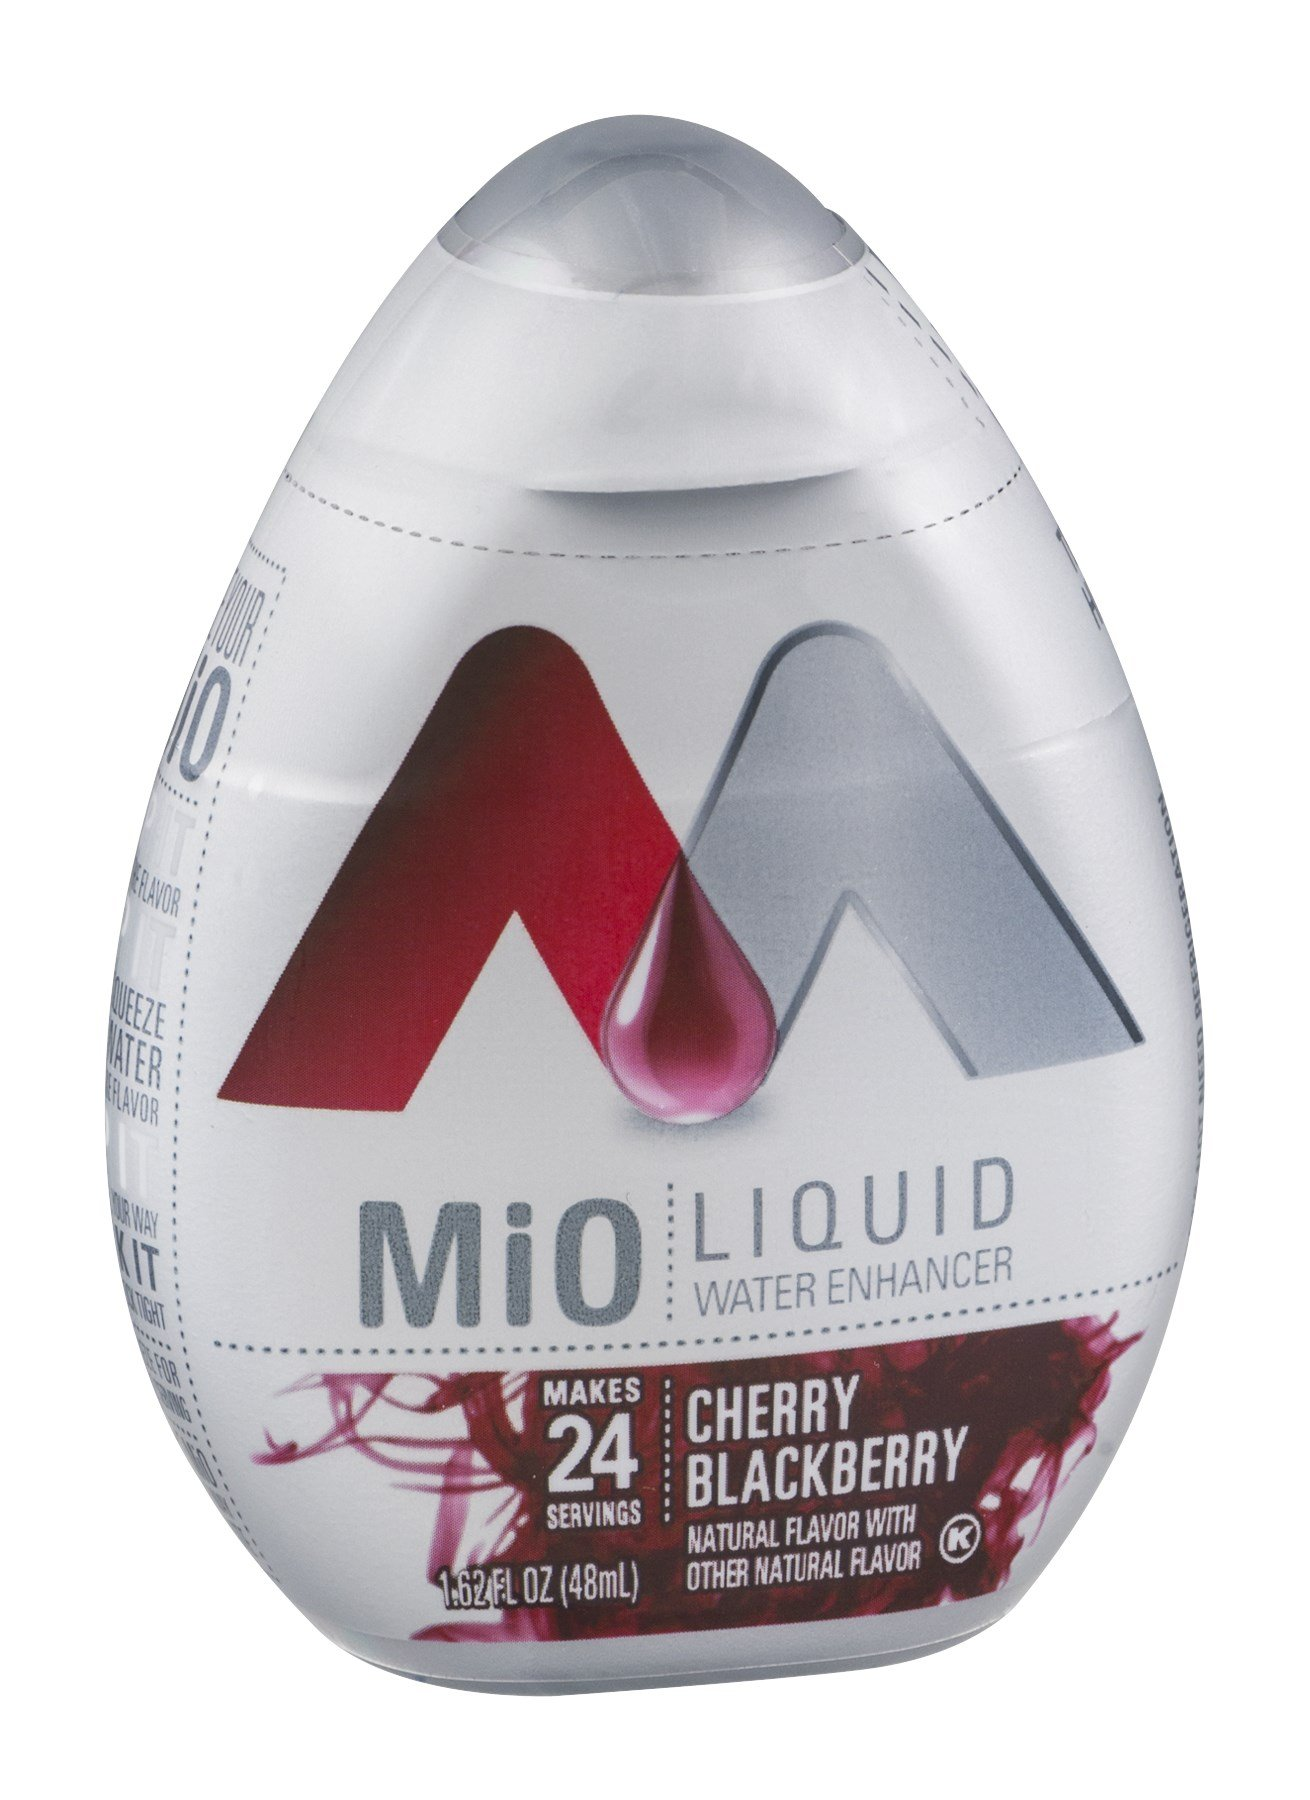 Mio MiO Liquid Water Enhancer Cherry Blackberry 1.62 OZ (Pack of 24)